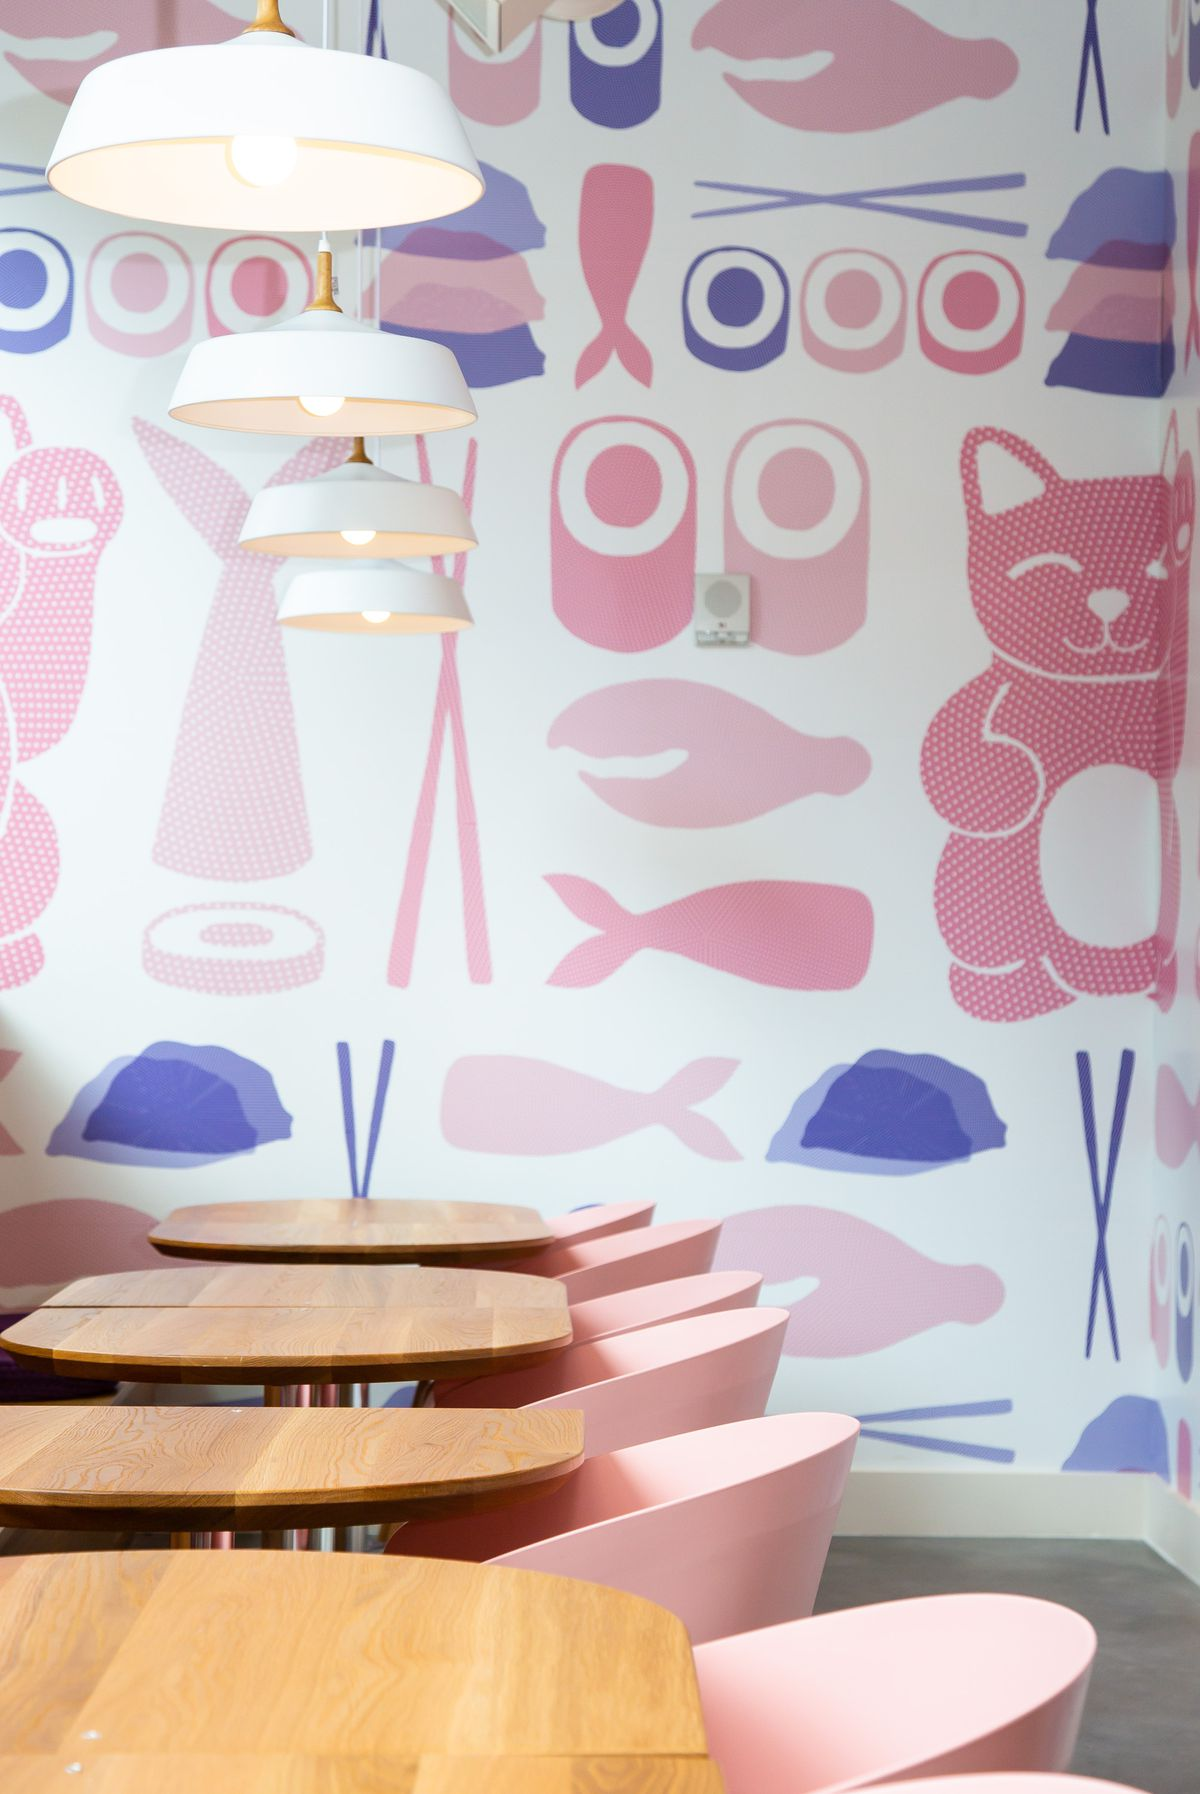 A row of tables with pink chair and a wall filled with pastel pink and purple paintings of lucky cats, chopsticks, sushi rolls, and fish